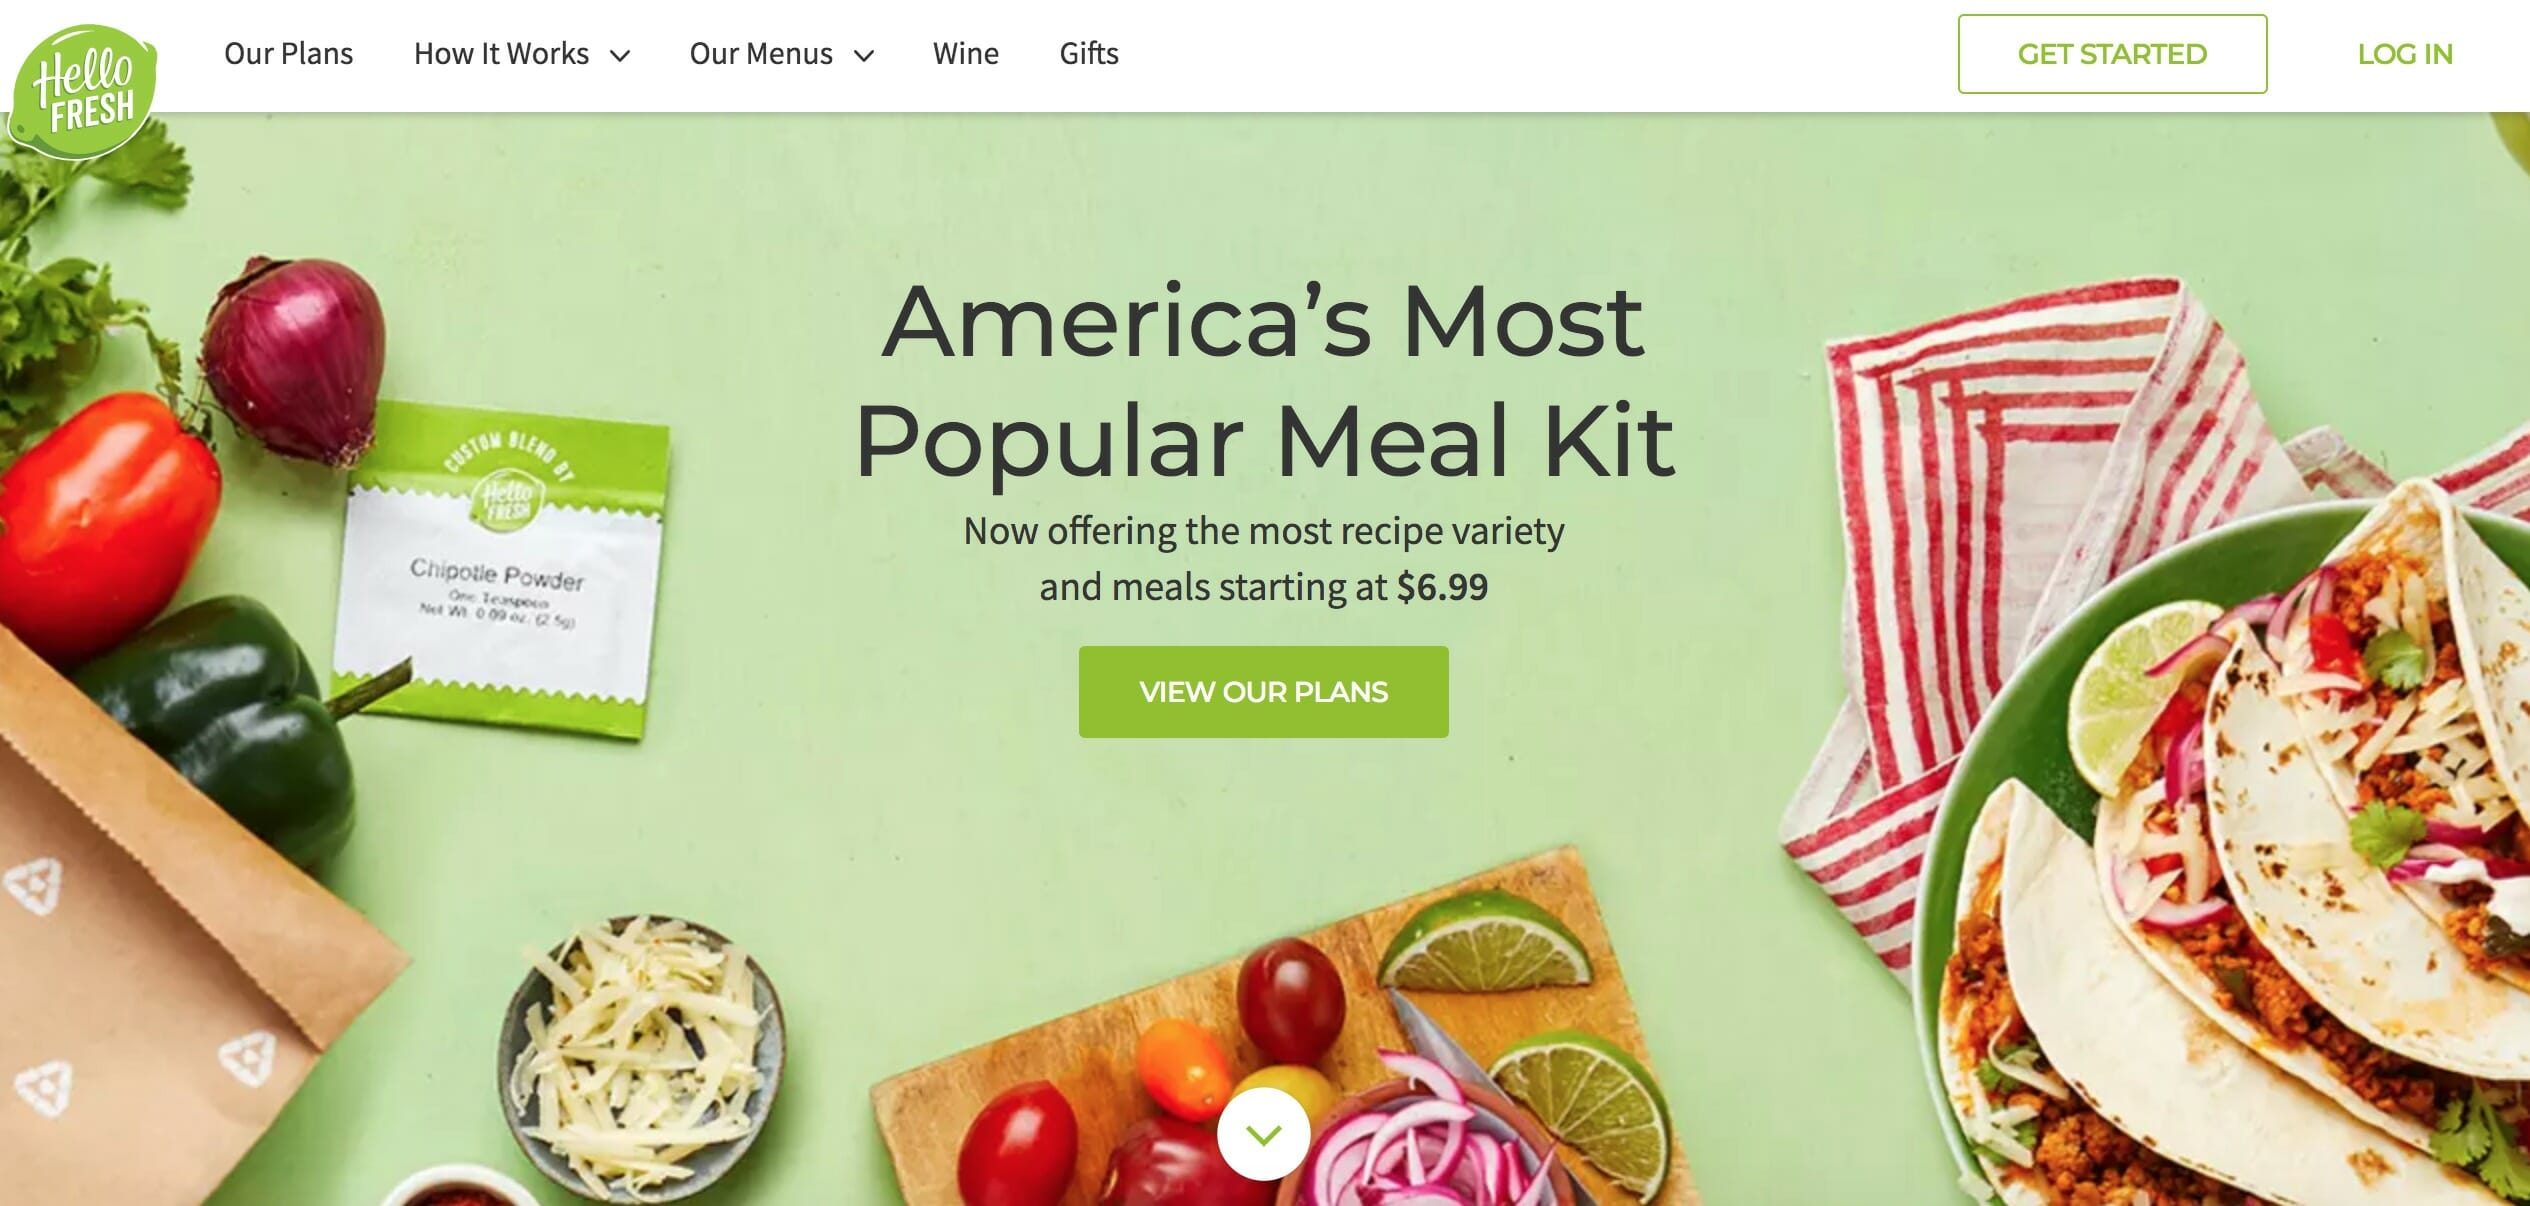 New Amazon Hellofresh Meal Kit Delivery Service